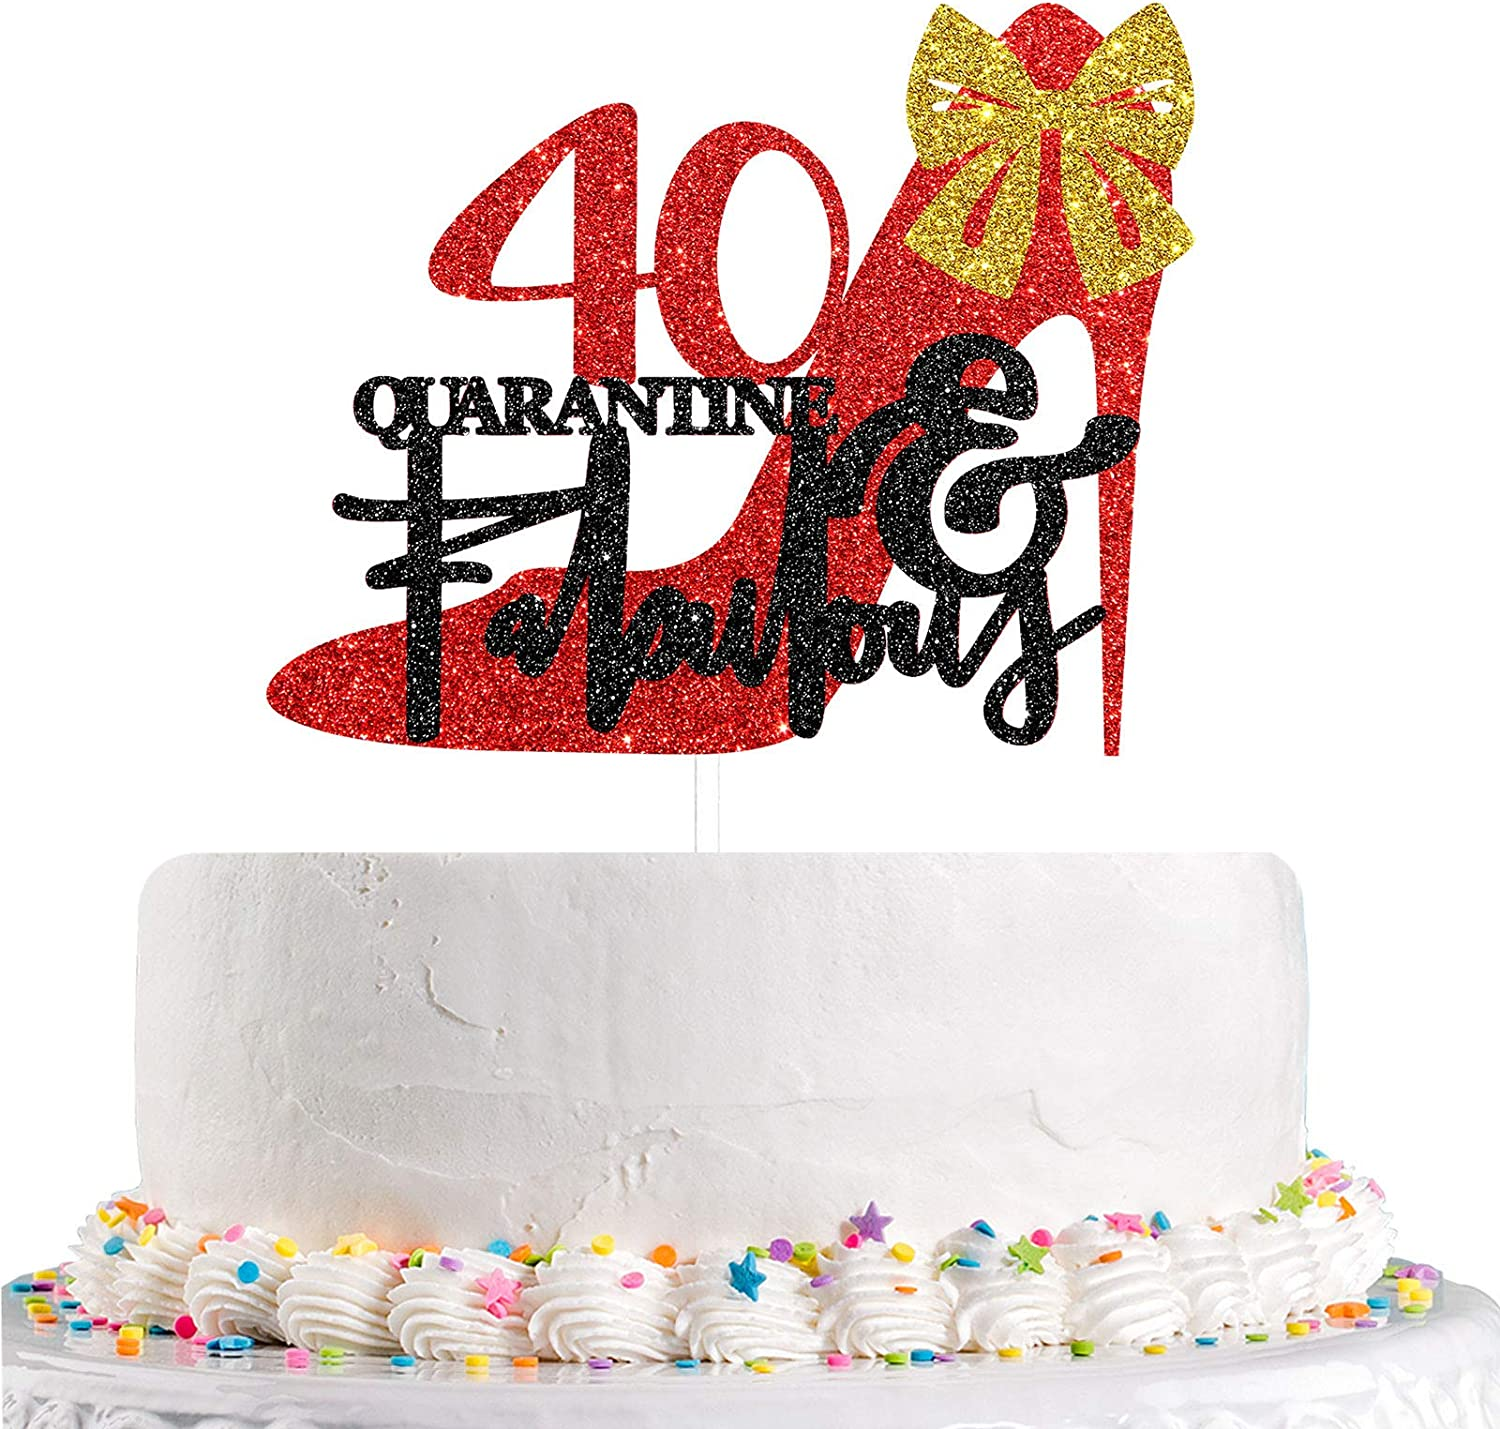 Talorine Red Black Forty & Fabulous Cake Topper for 40th Birthday Decor, 40 & Quarantine Fabulous, Women and Girls Forty Theme Birthday Wedding Anniversary Party Cake Decorations Supplies Glitter